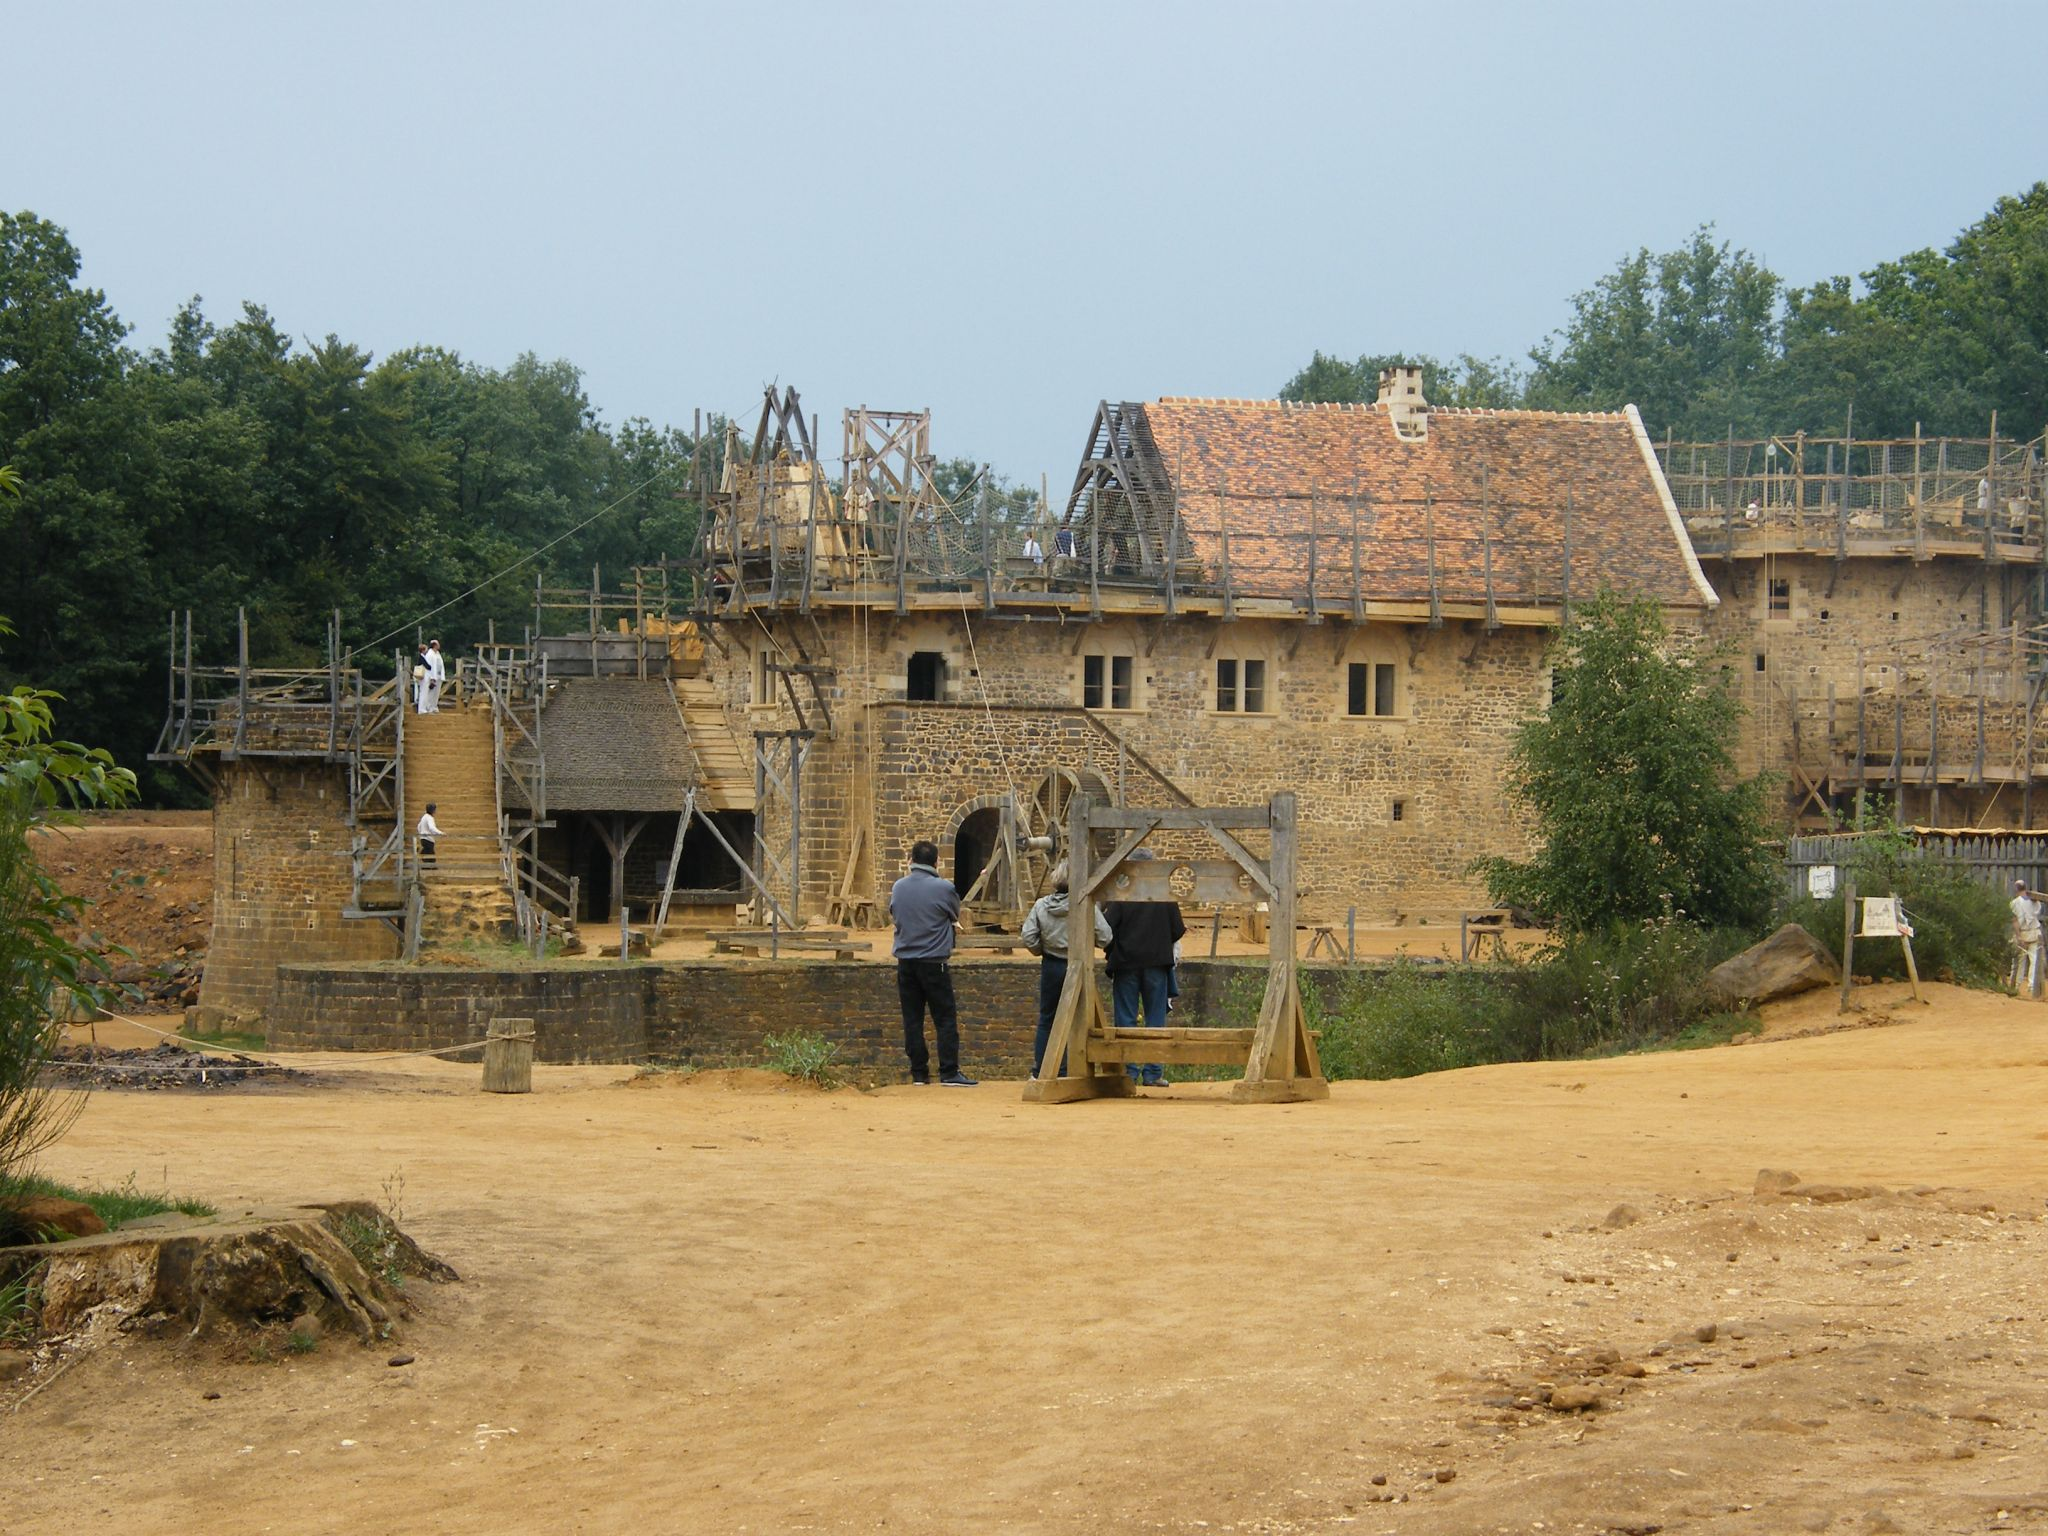 Medieval chateau of Guedelon, France